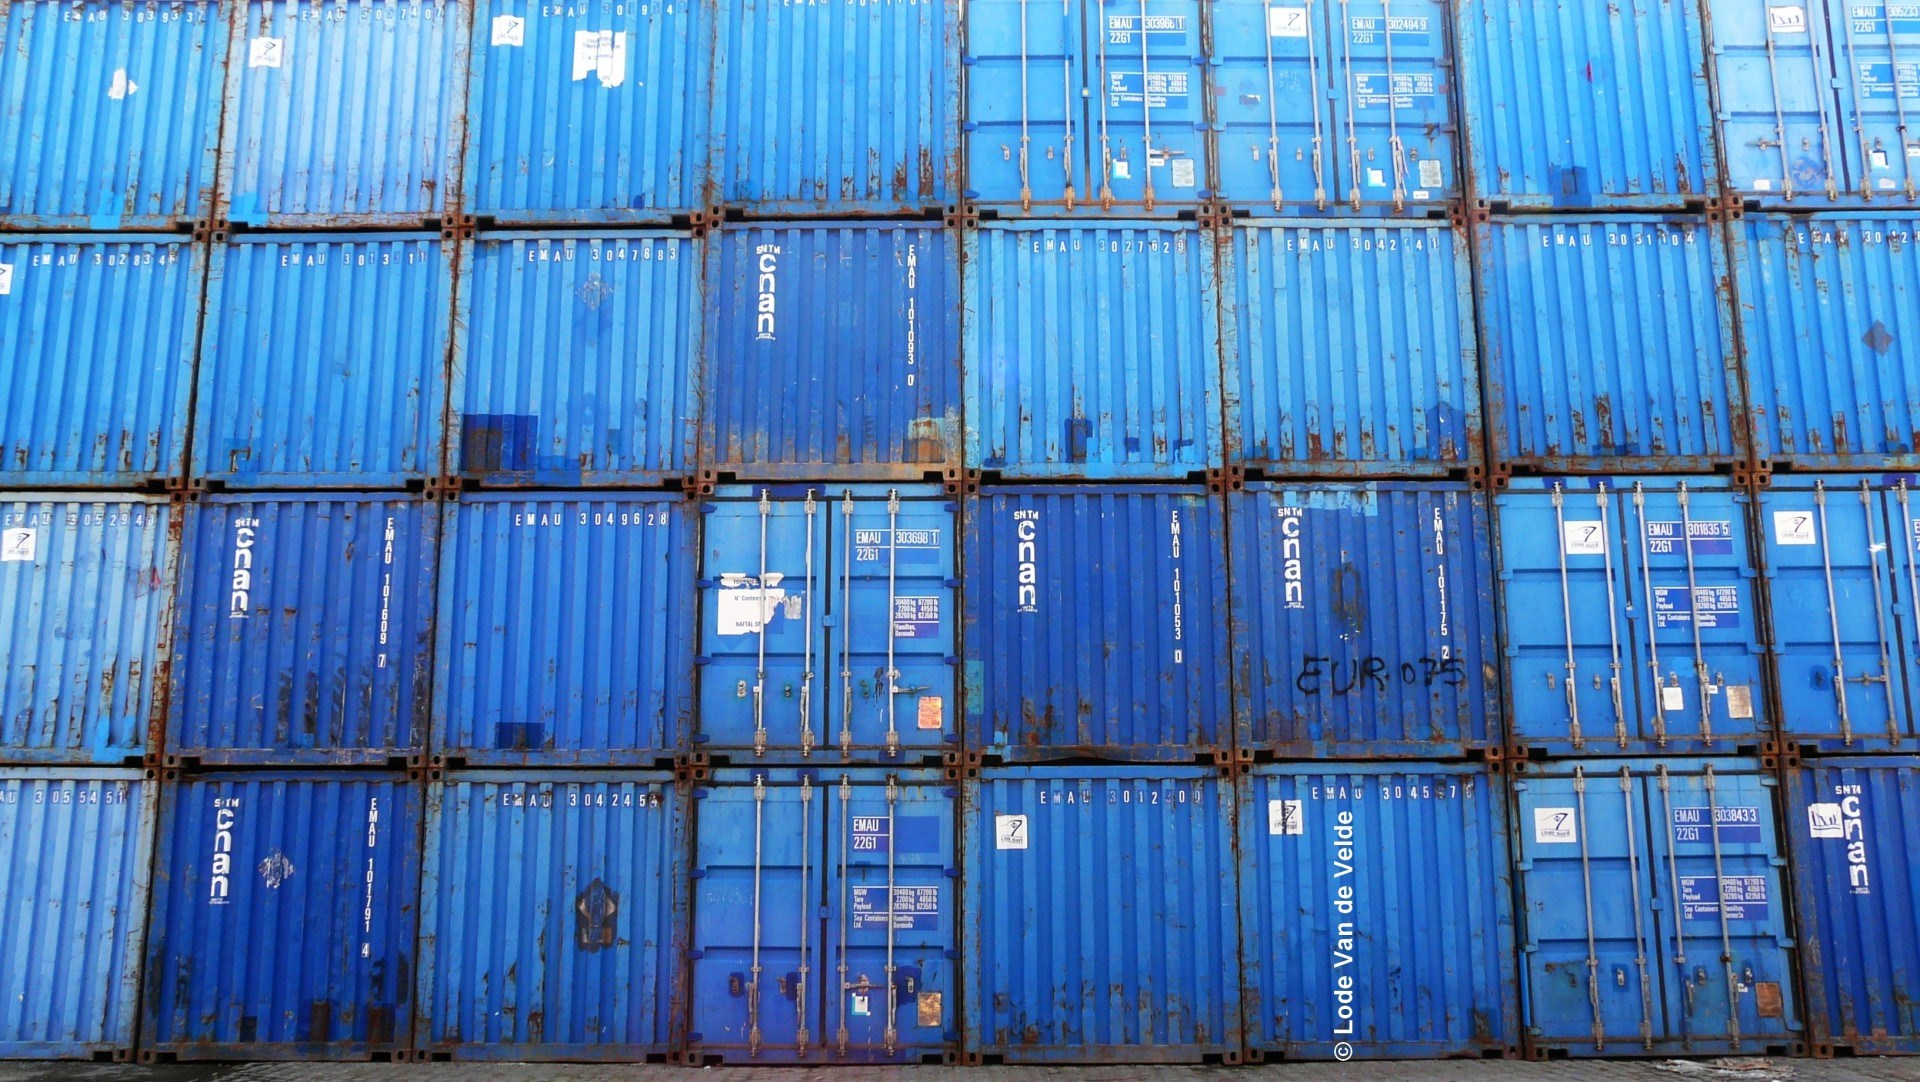 trade shipping containers.jpg